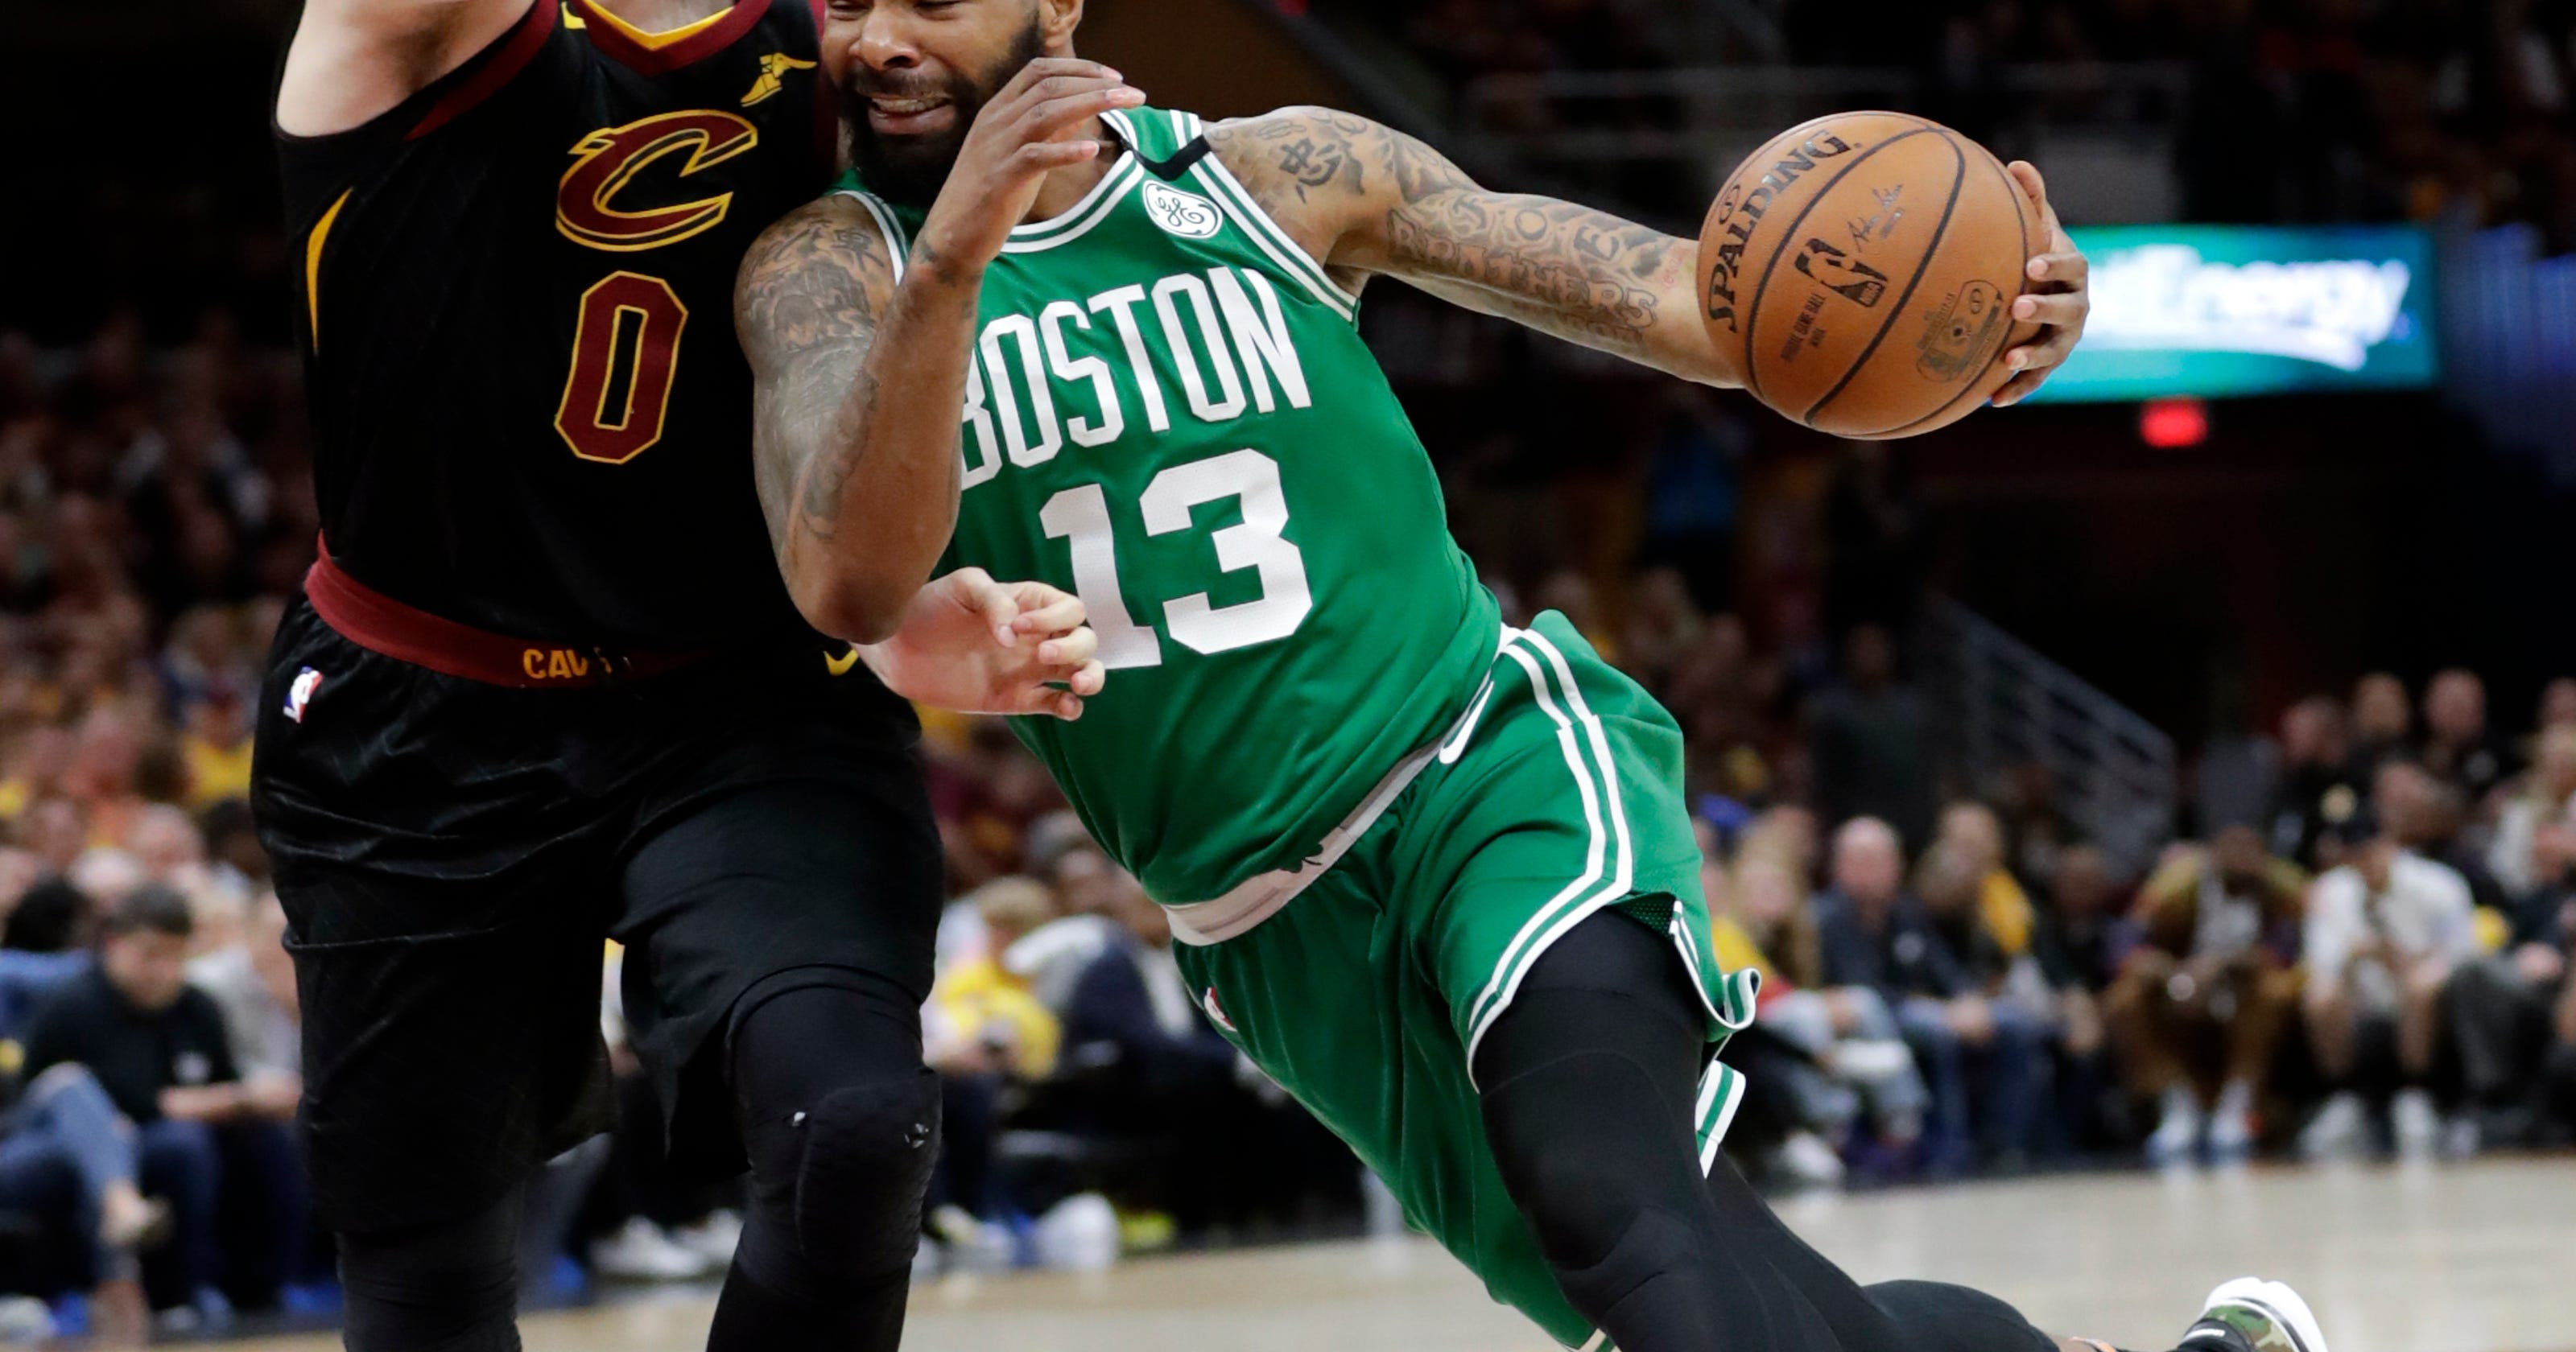 af05764dfc7 All tied up  LeBron s 44 helps Cavs even series with Celtics